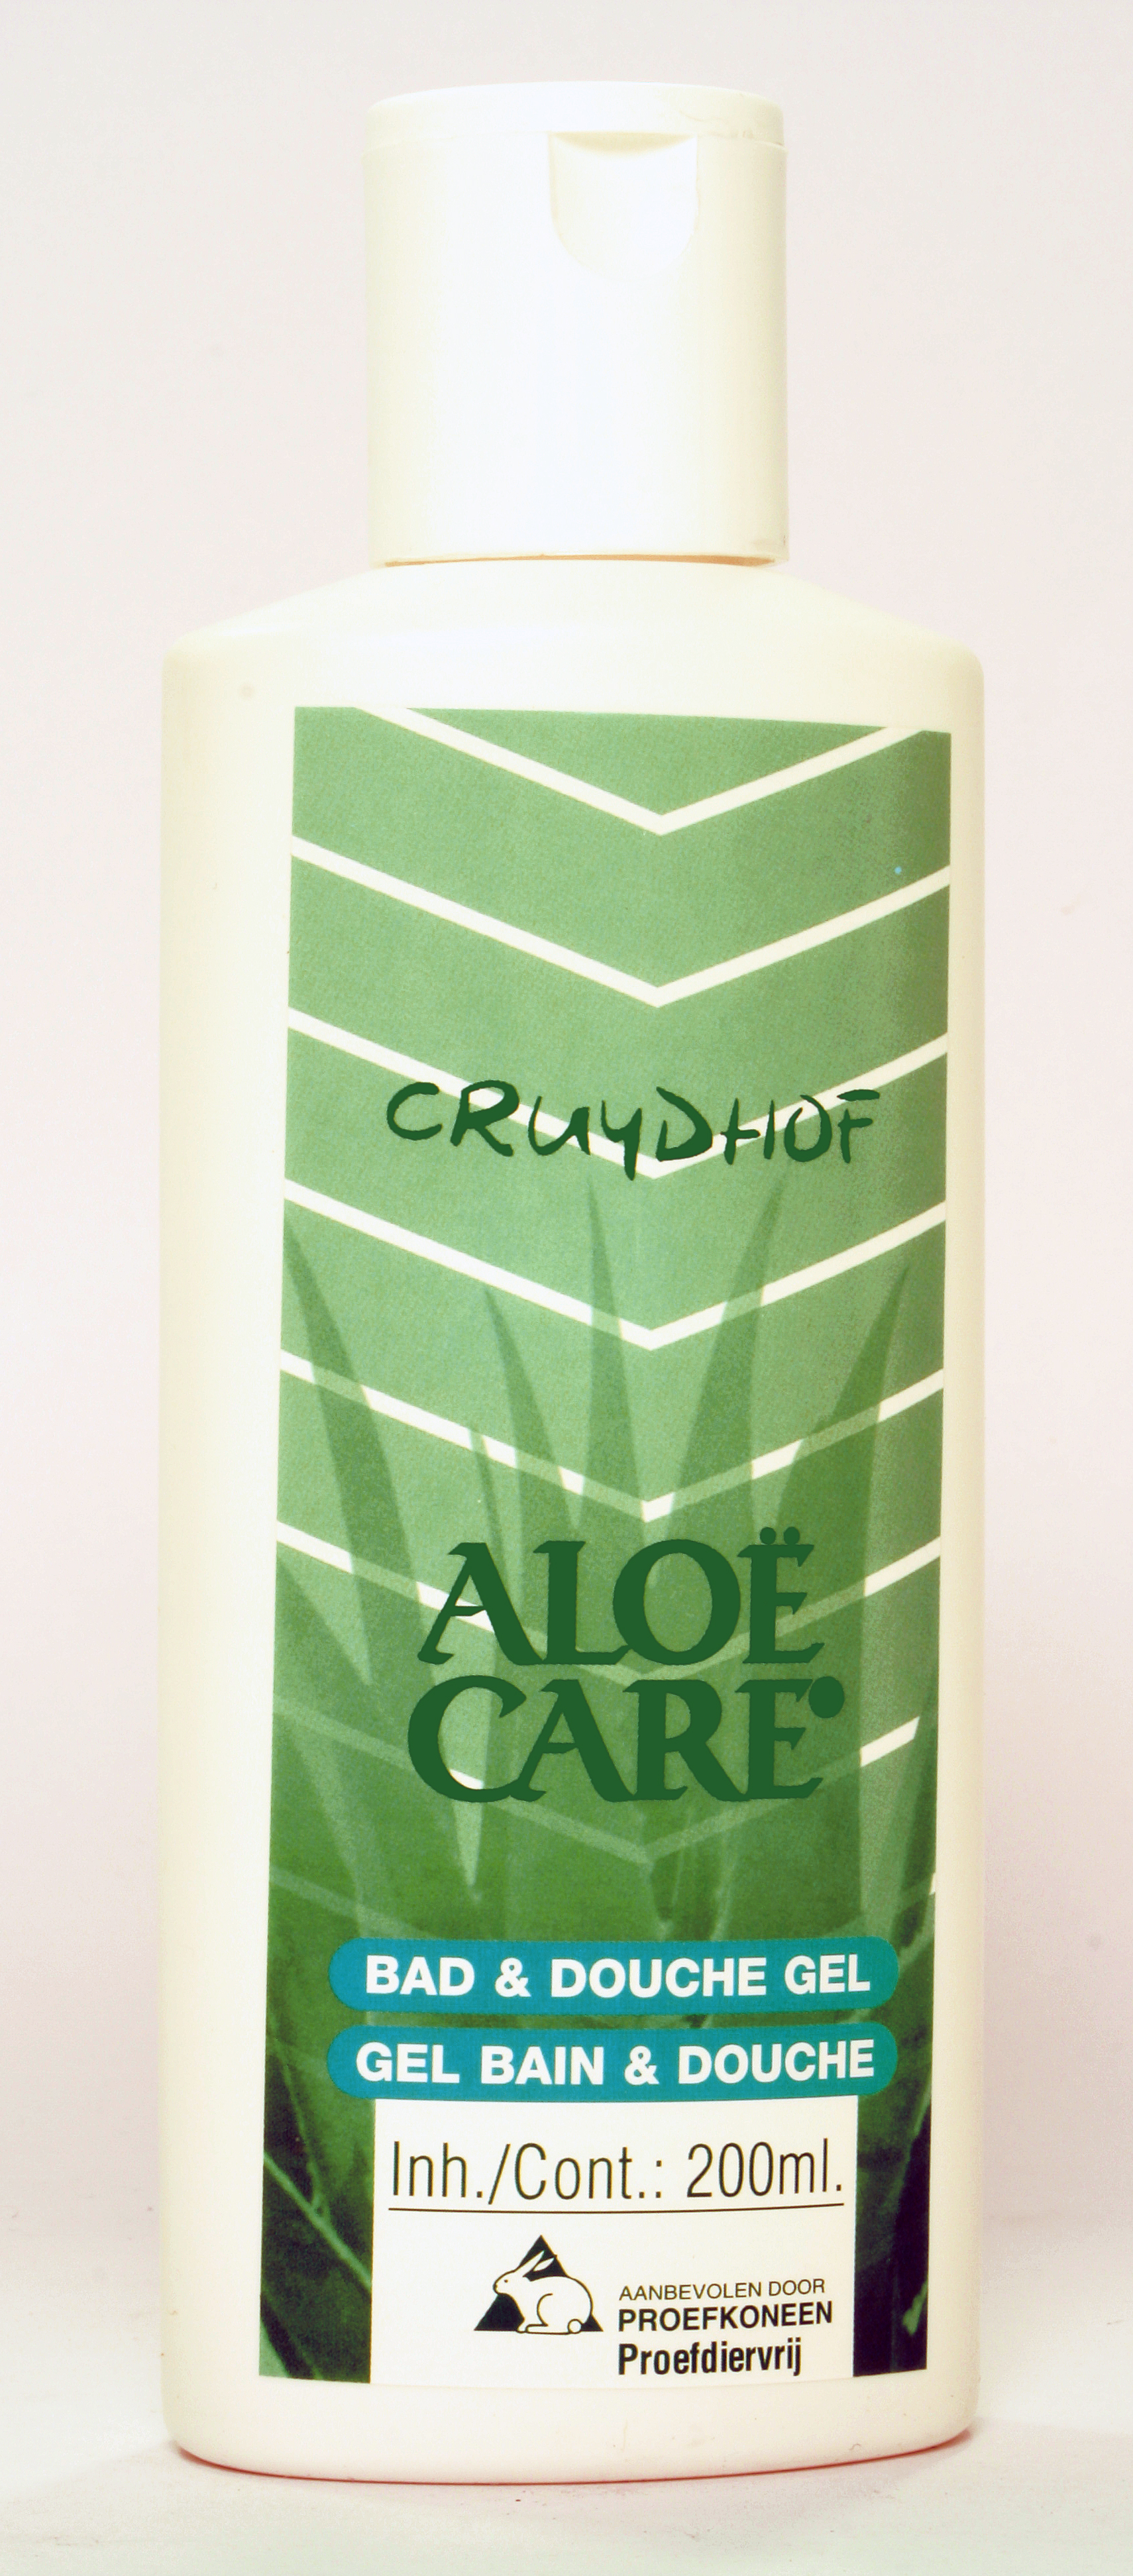 Aloe care bad & douche gel